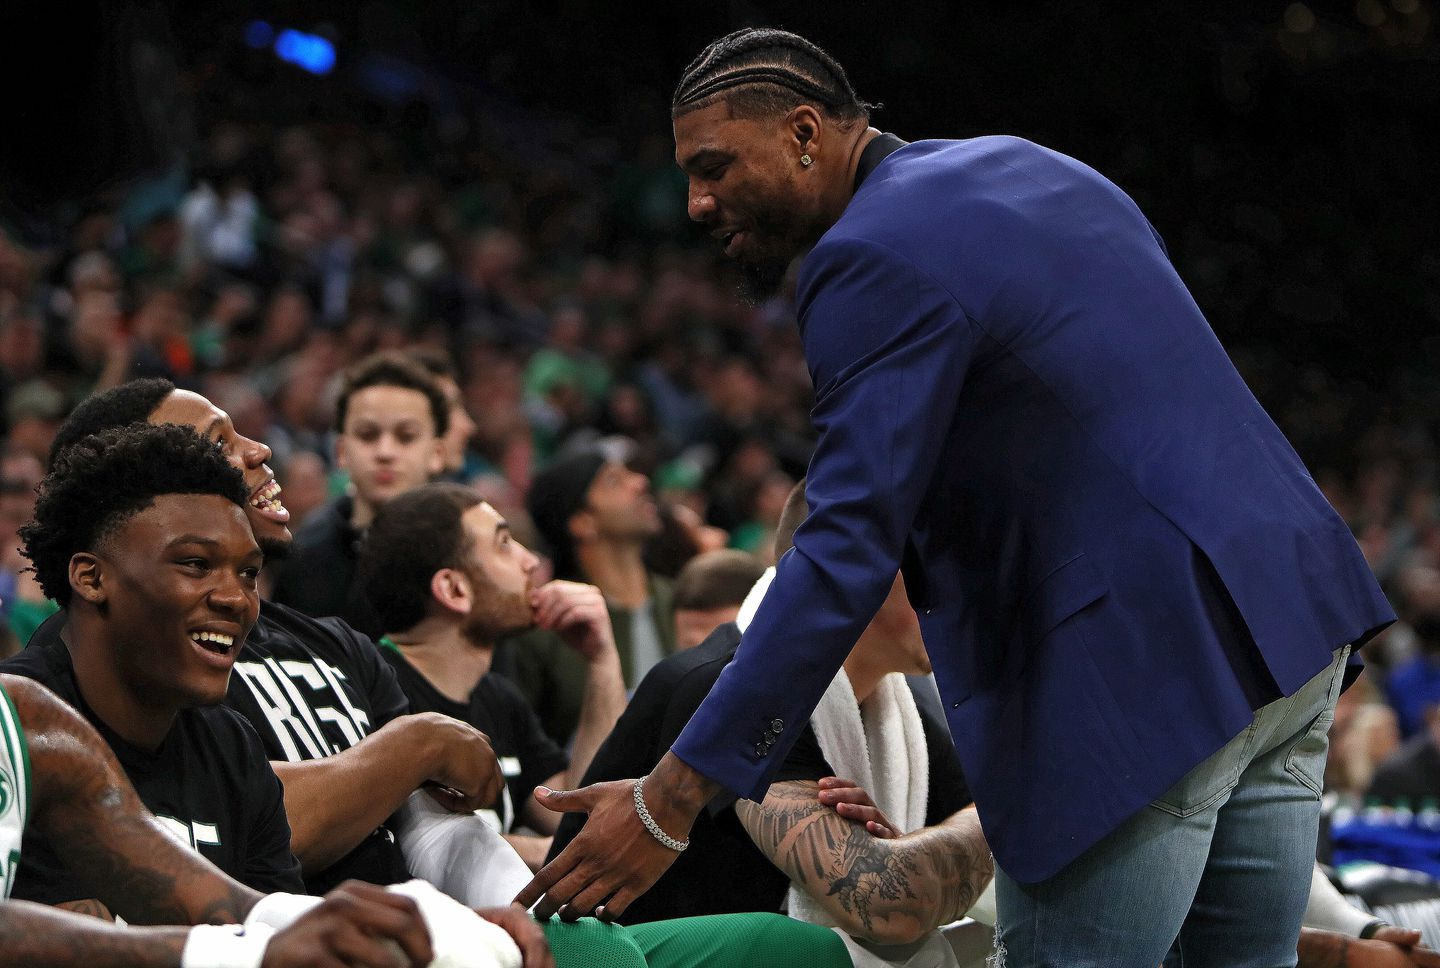 Kendrick Perkins rips Celtics' Kyrie Irving: 'He was just a bad leader'